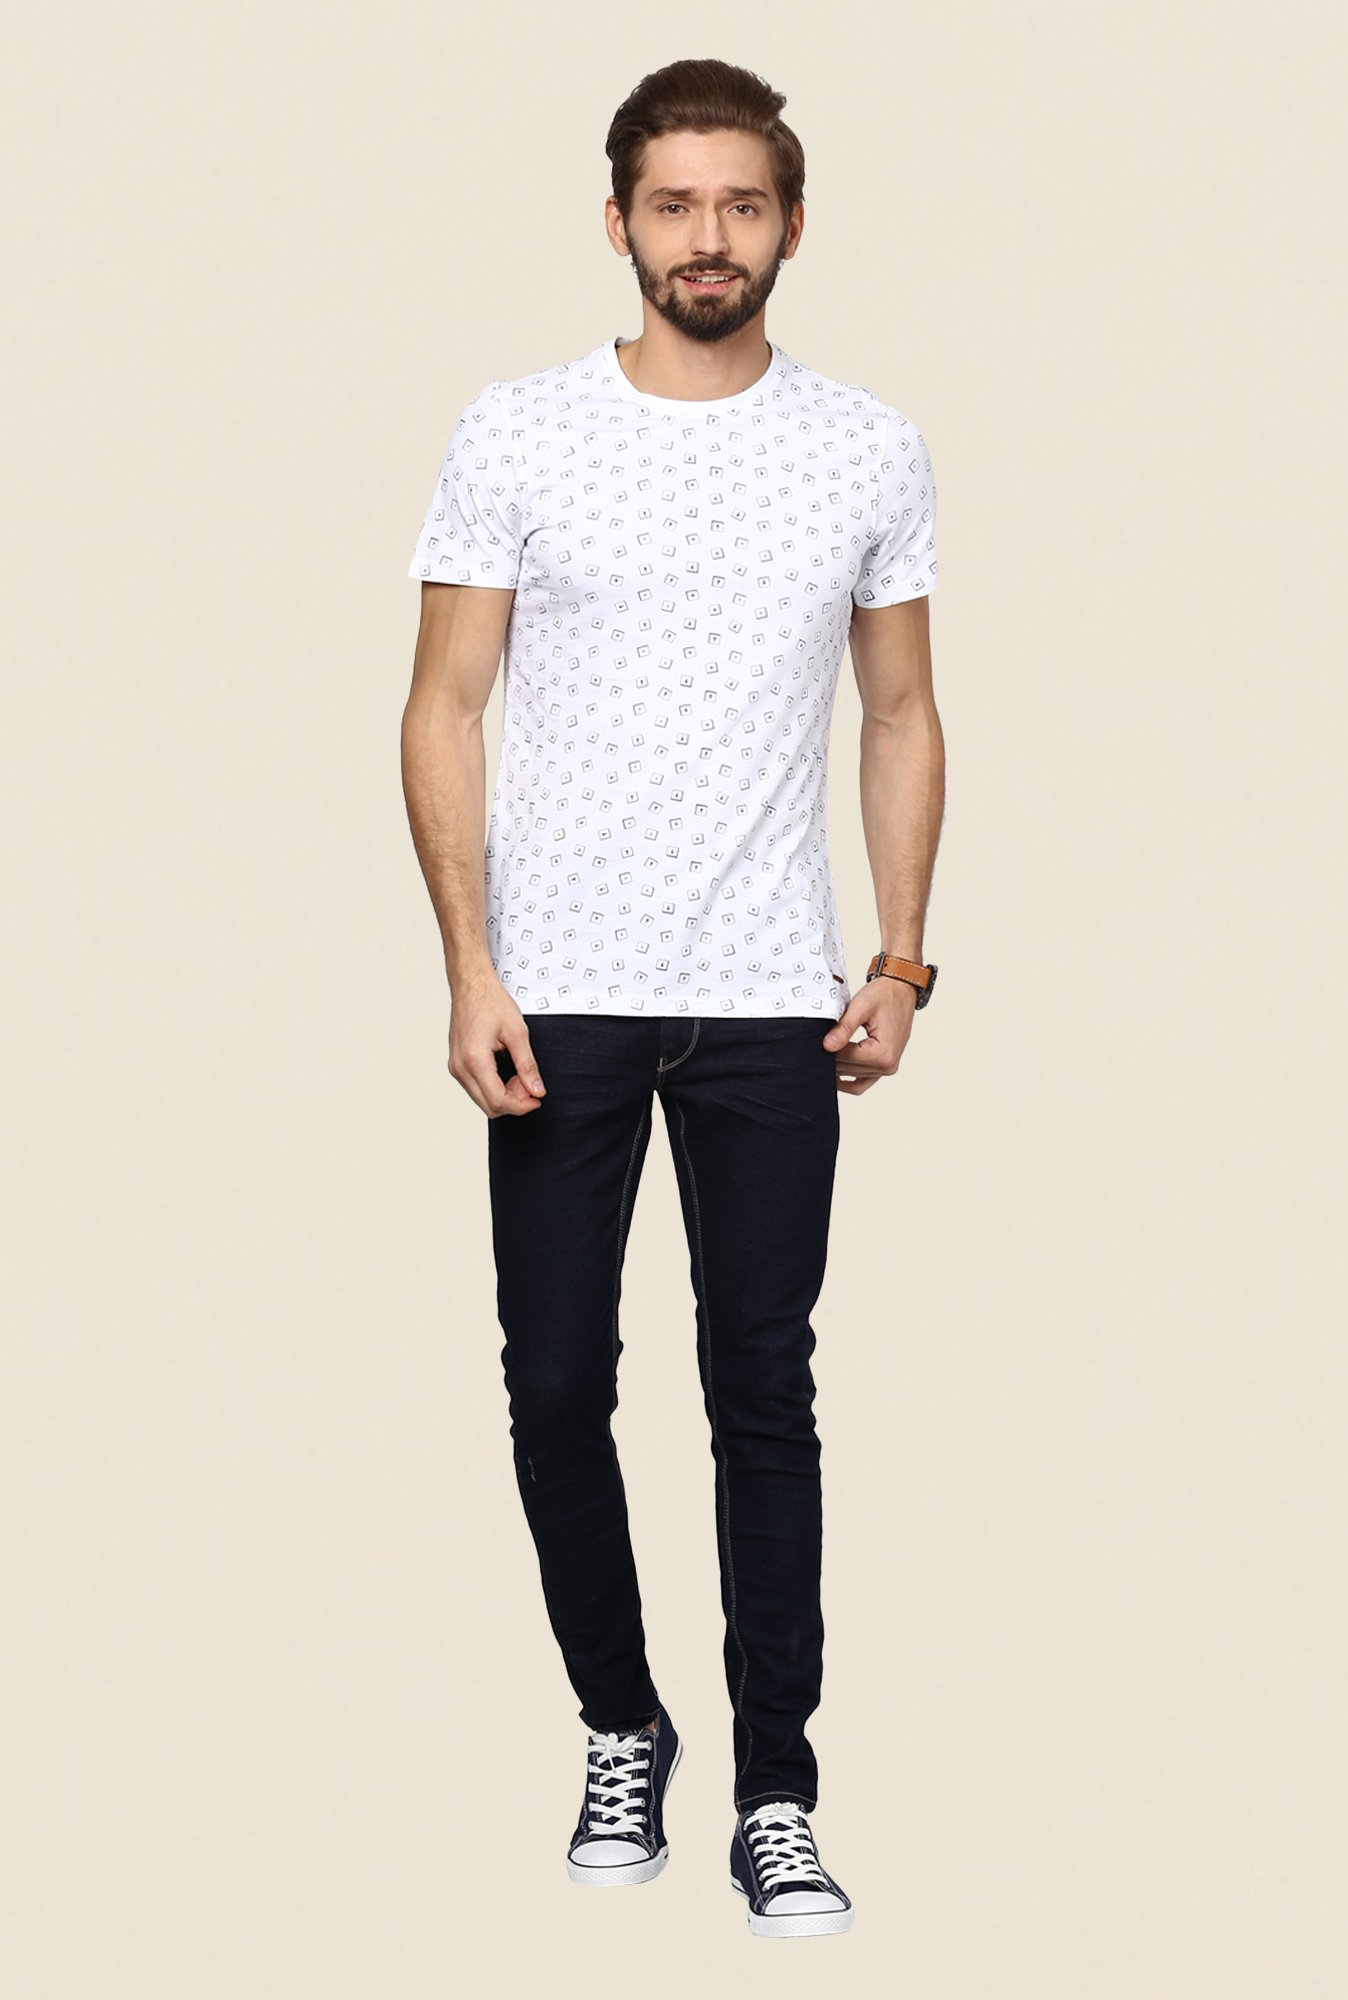 Turtle White Printed T Shirt